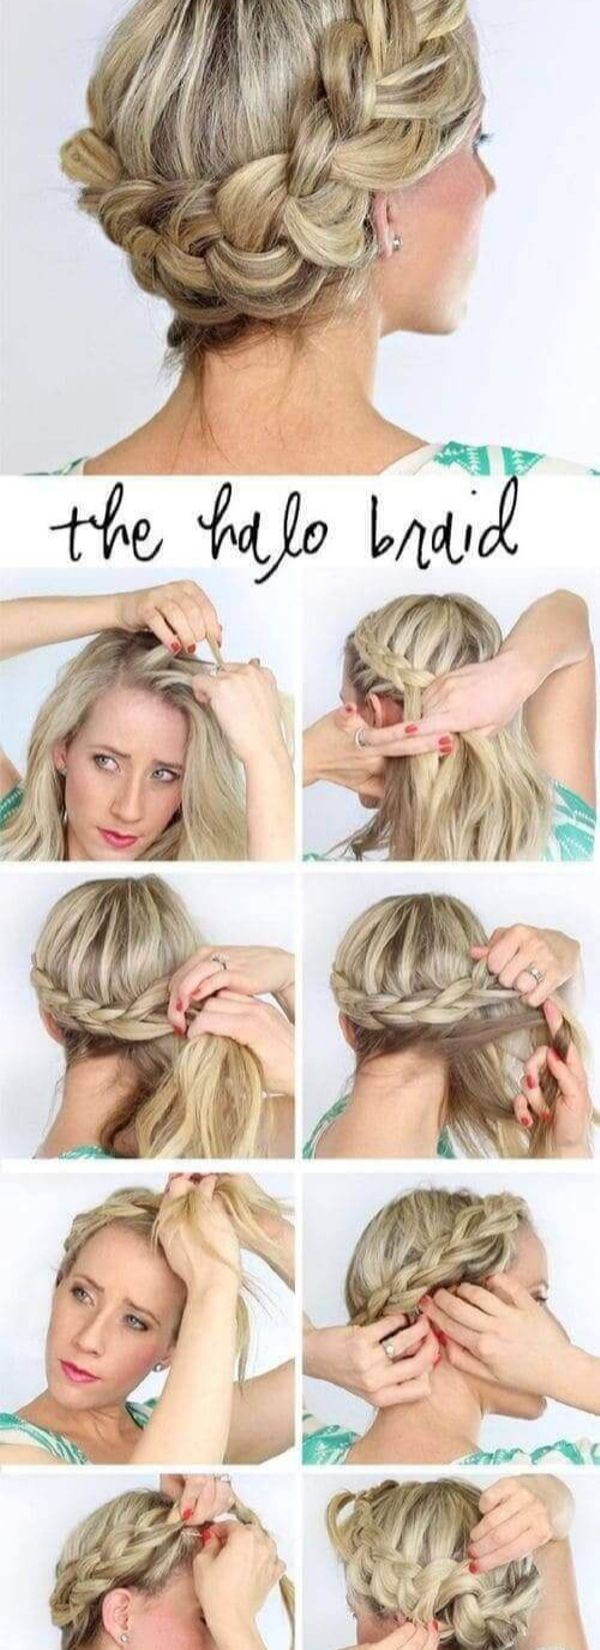 50+ Easy and Cute Hairstyles for Little Girls [Photos+VIDEO]